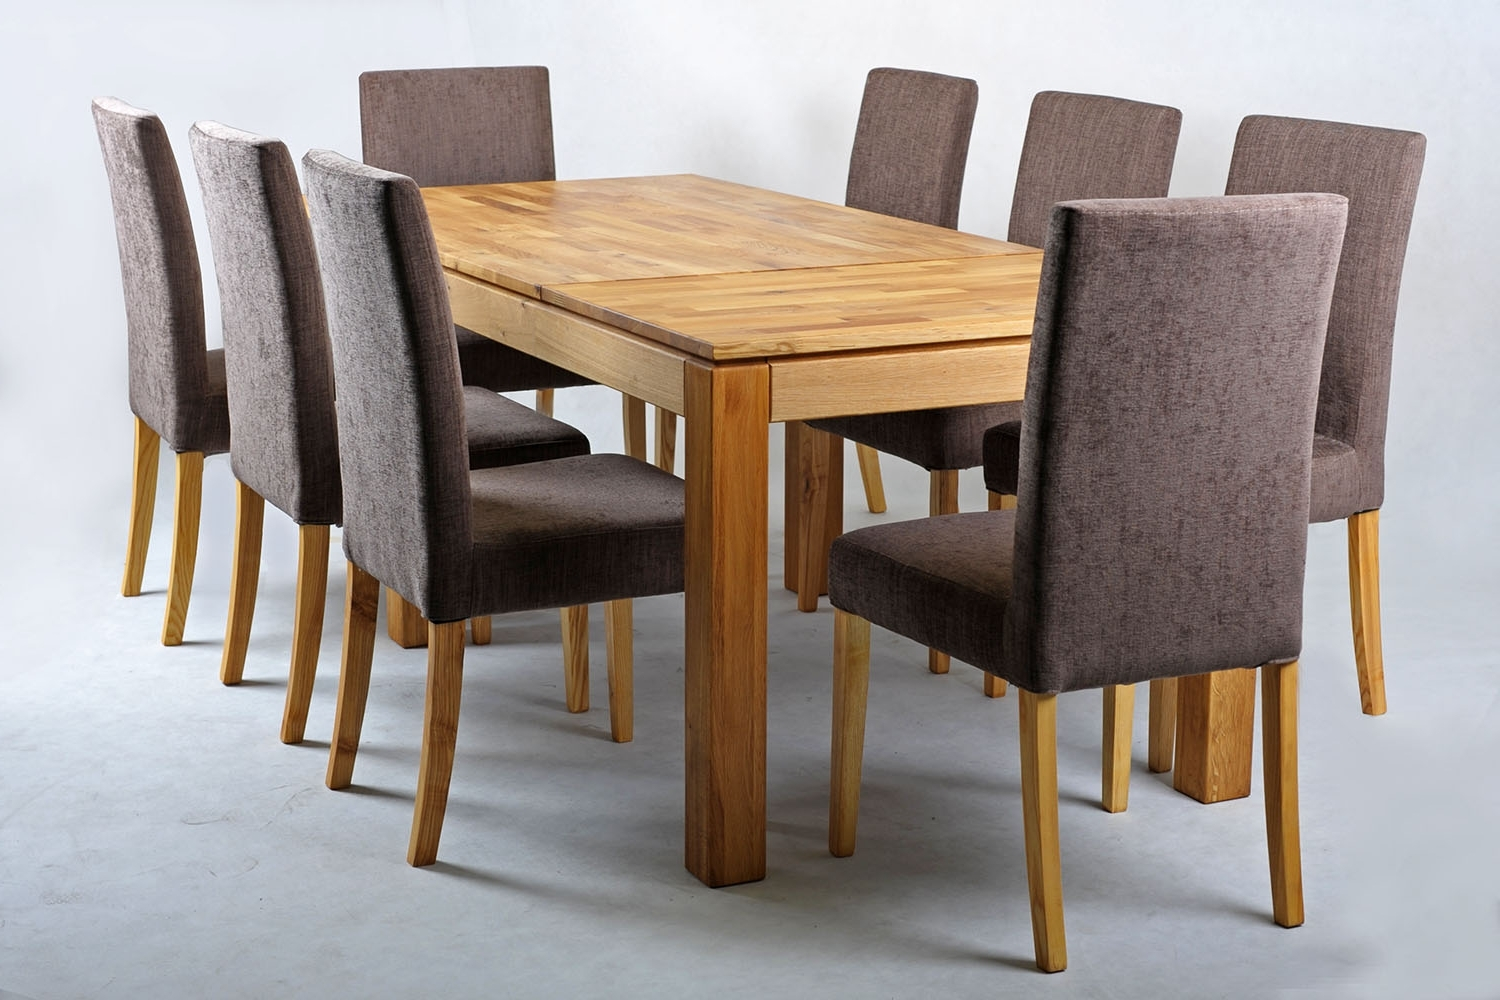 Solid Oak Extending Dining Table And Chairs Set, Solid Oak Dining In Well Known Extending Dining Tables Sets (View 9 of 25)